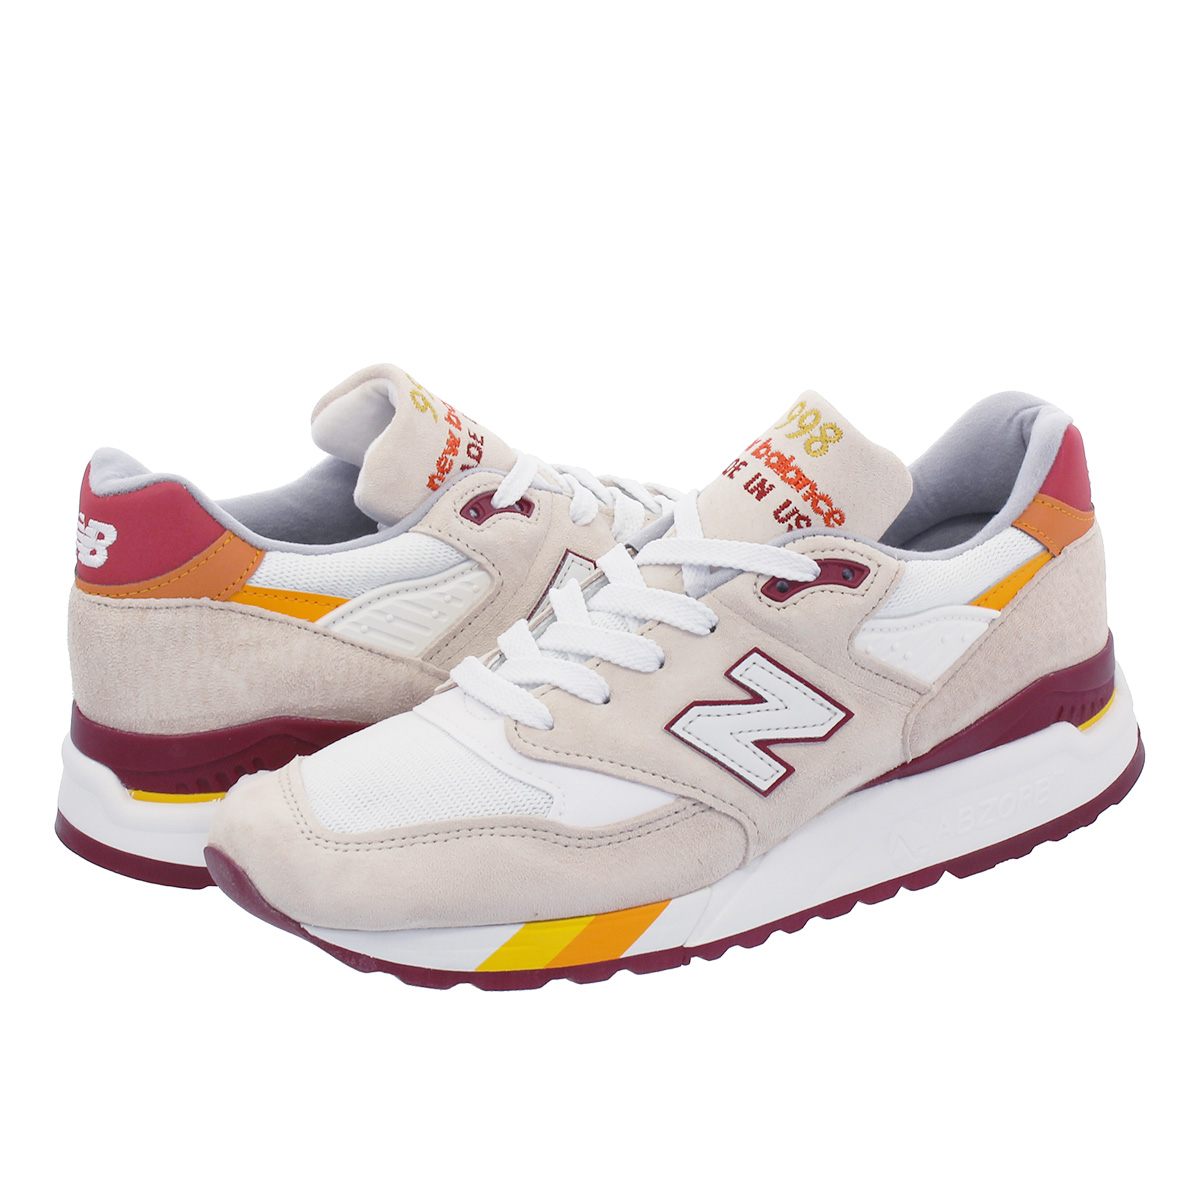 NEW BALANCE M998CST 【MADE IN U.S.A.】 【Dワイズ】 ニューバランス M 998 CST WHITE/OFF WHITE/BURGUNDY/RED